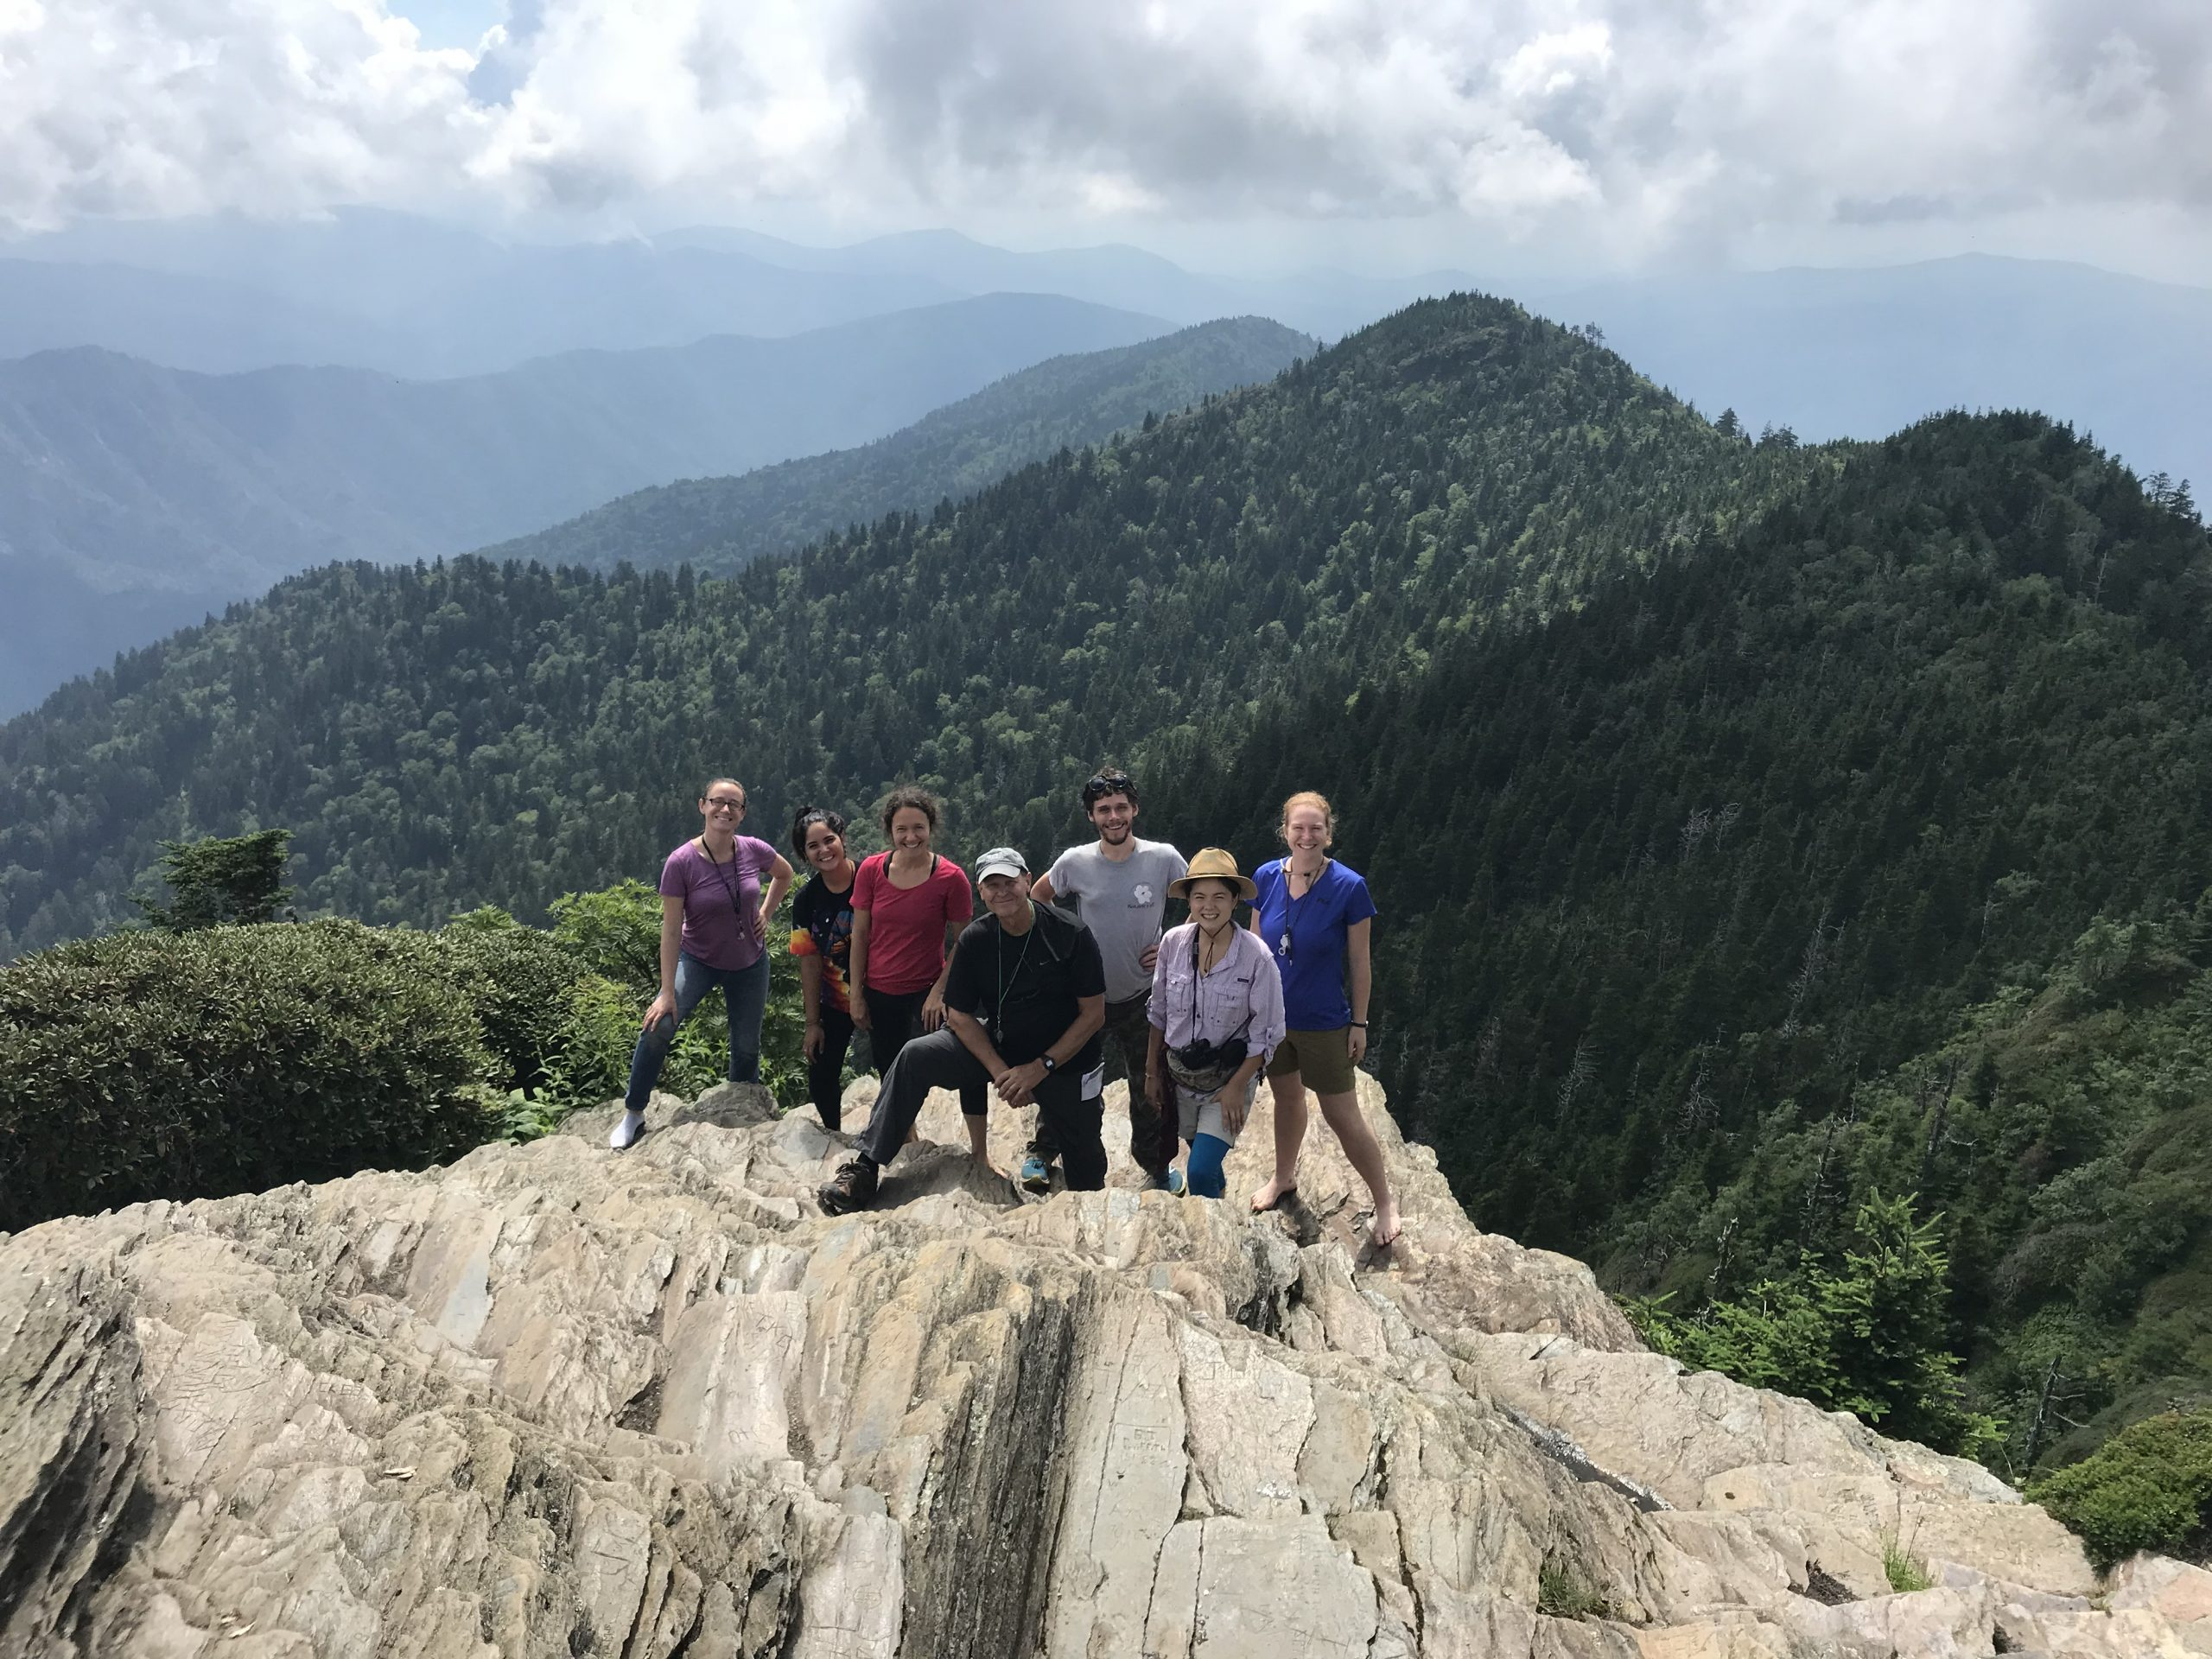 The 2018 Highlands Biological Station field course in introduction to lichens on the culmination of their trip to study threatened endemic species in Great Smoky Mountains National Park. Cliff tops of Mount LeConte, Tennessee.